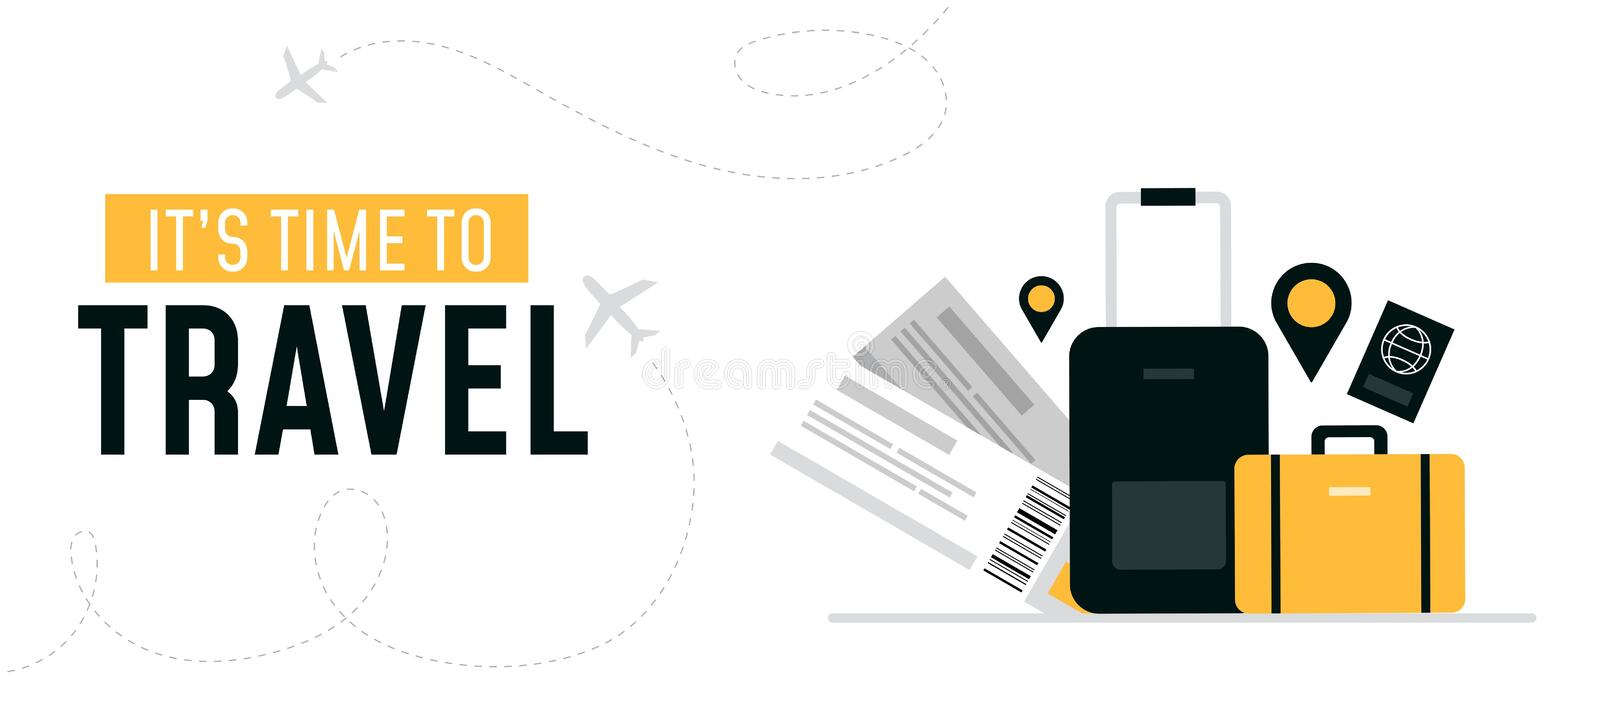 Its time to travel design banner vector illustration